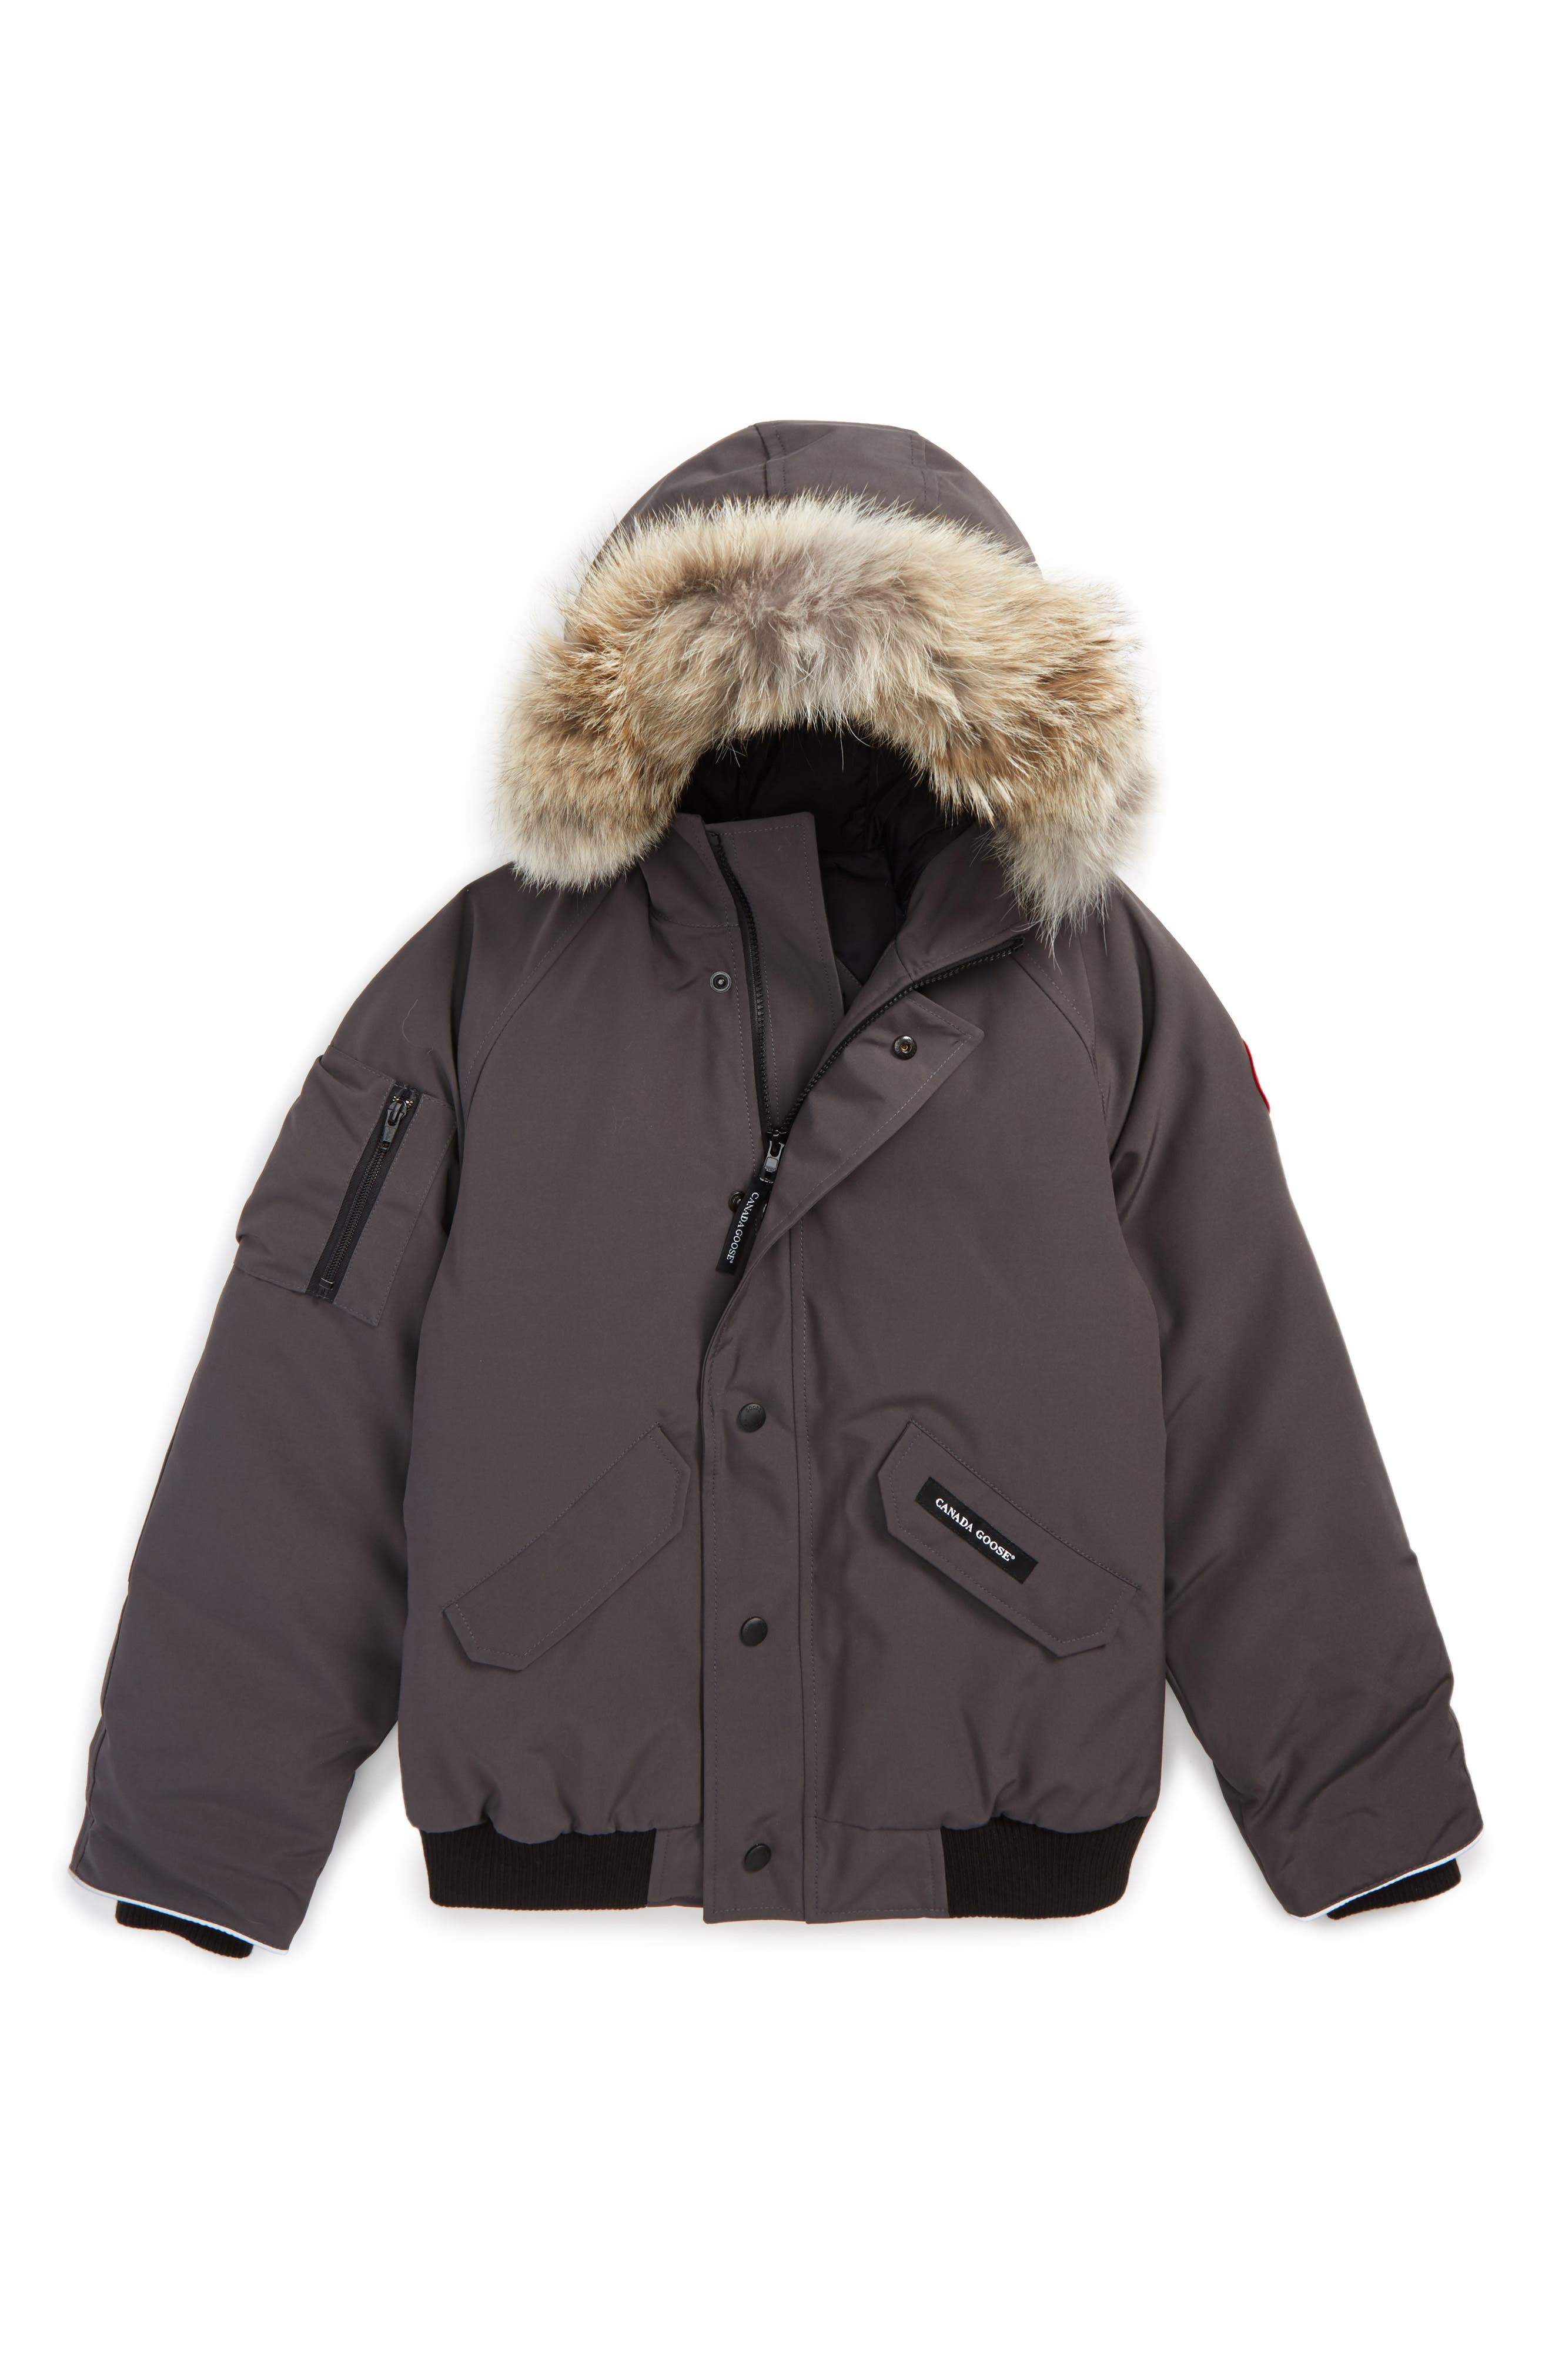 CANADA GOOSE 'Rundle' Down Bomber Jacket with Genuine Coyote Fur Trim, Main, color, GRAPHITE